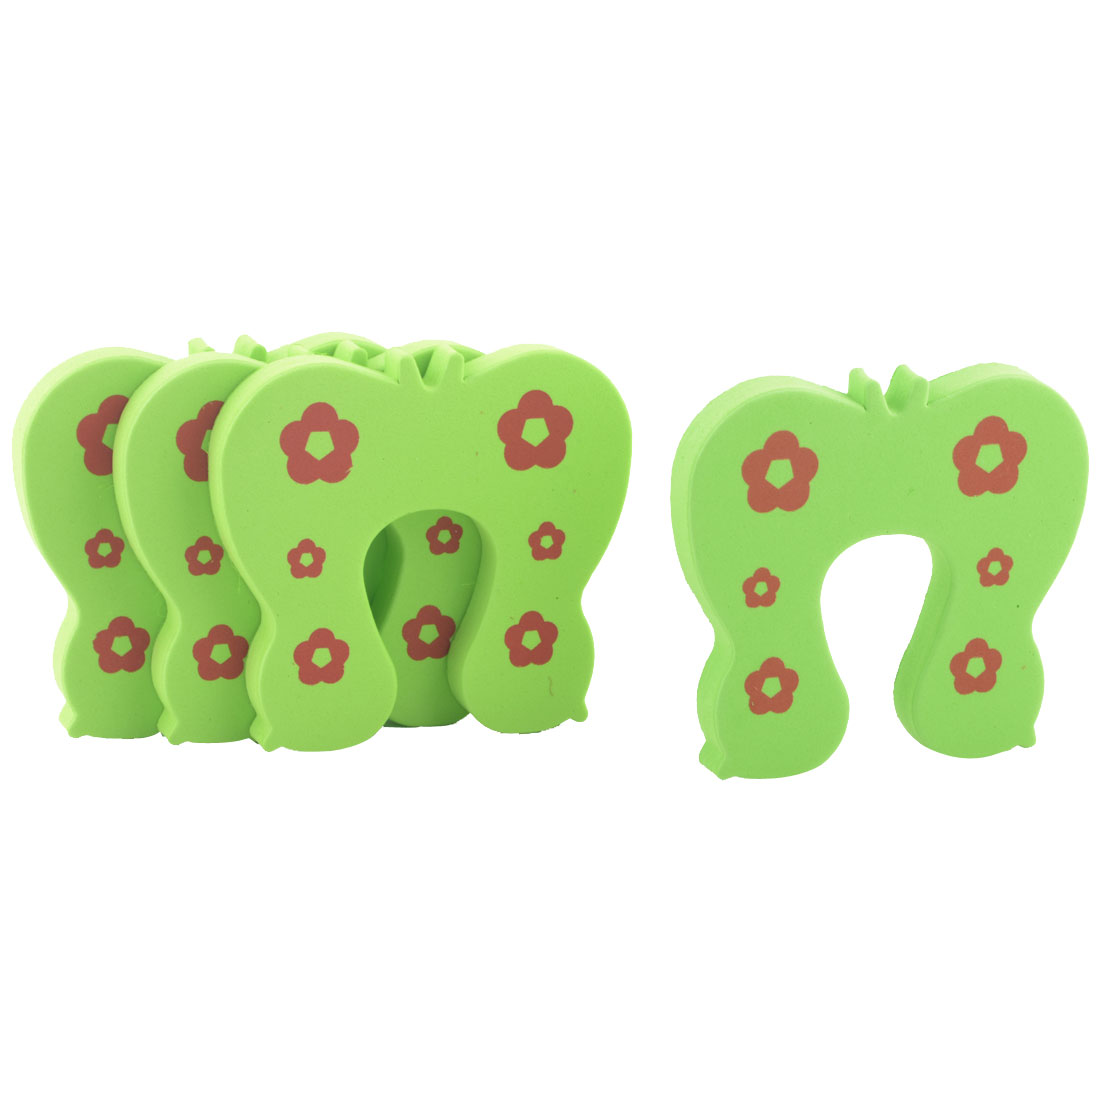 EVA Cartoon Green Butterfly Home Safety Guard Doorstop Door Stopper Lock 4pcs